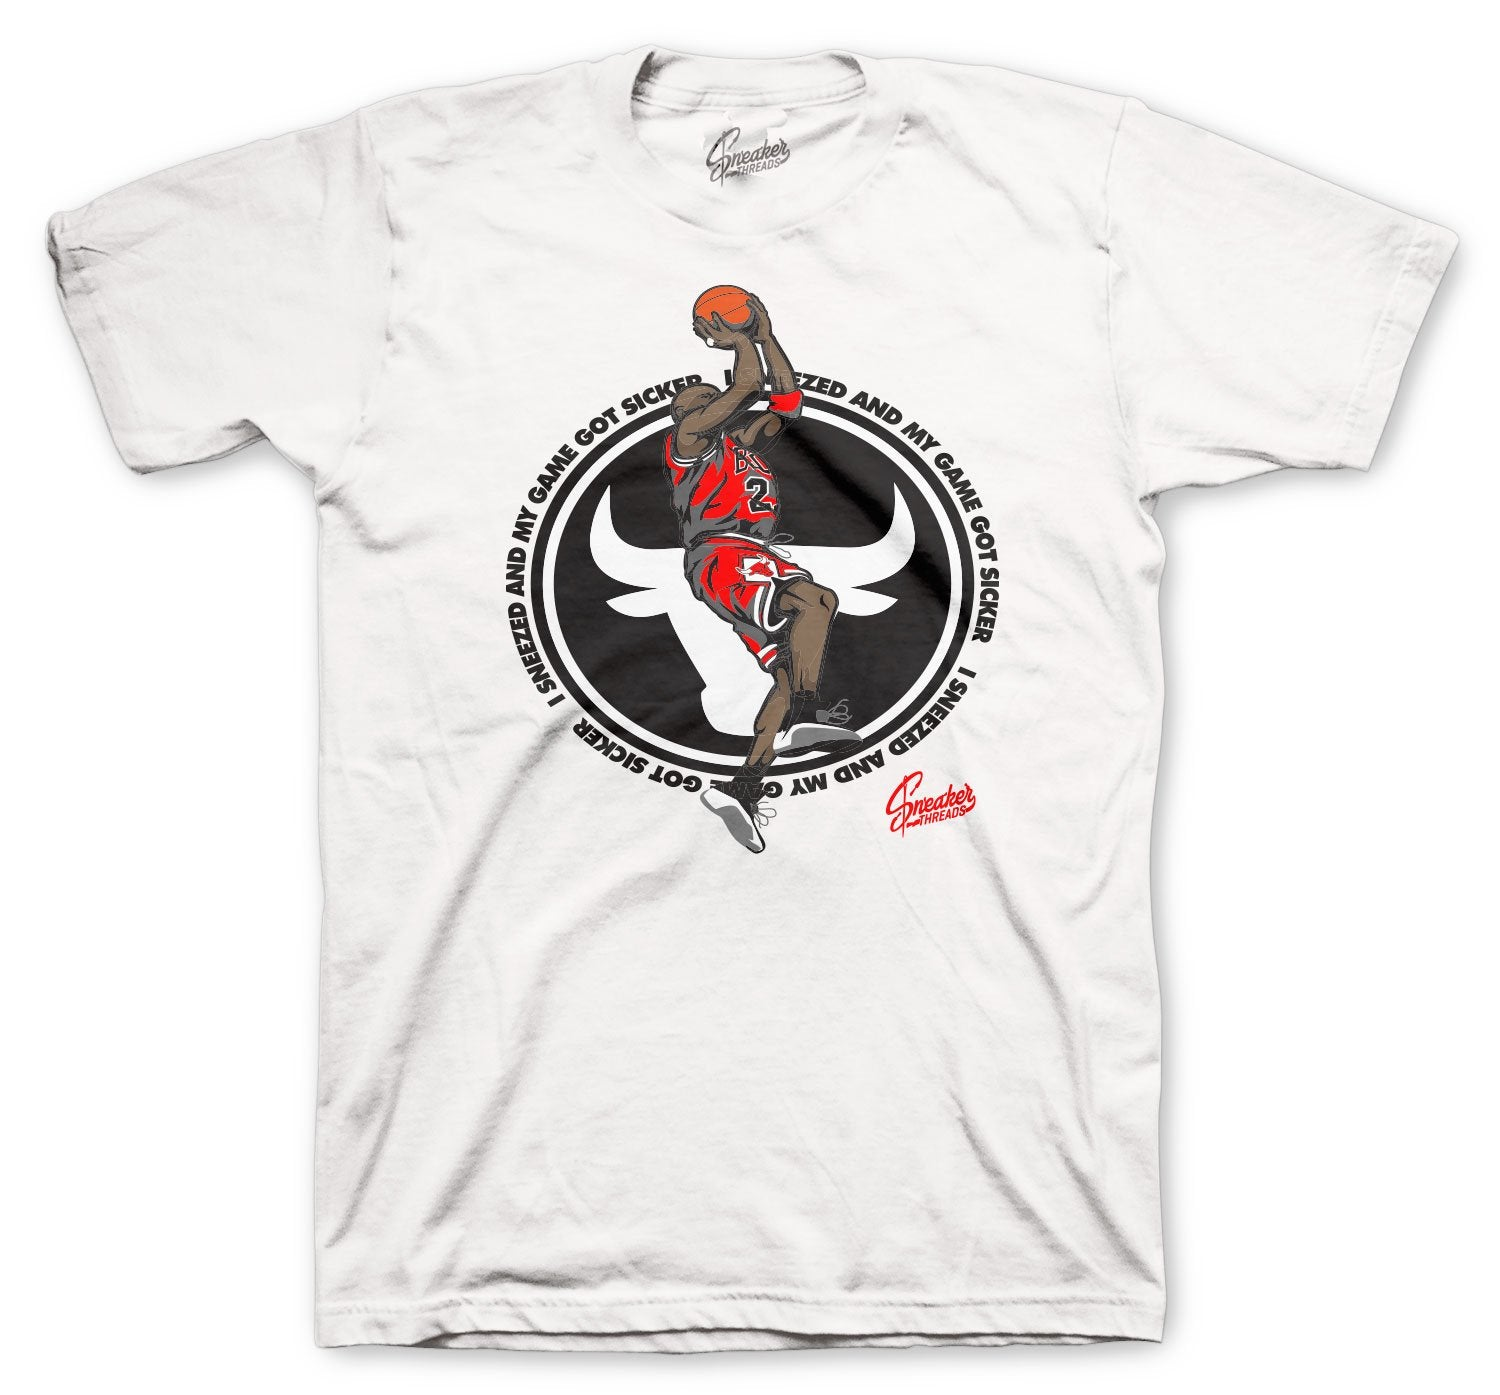 Shirt collection created to match perfect with the Jordan 12 dark wolf grey